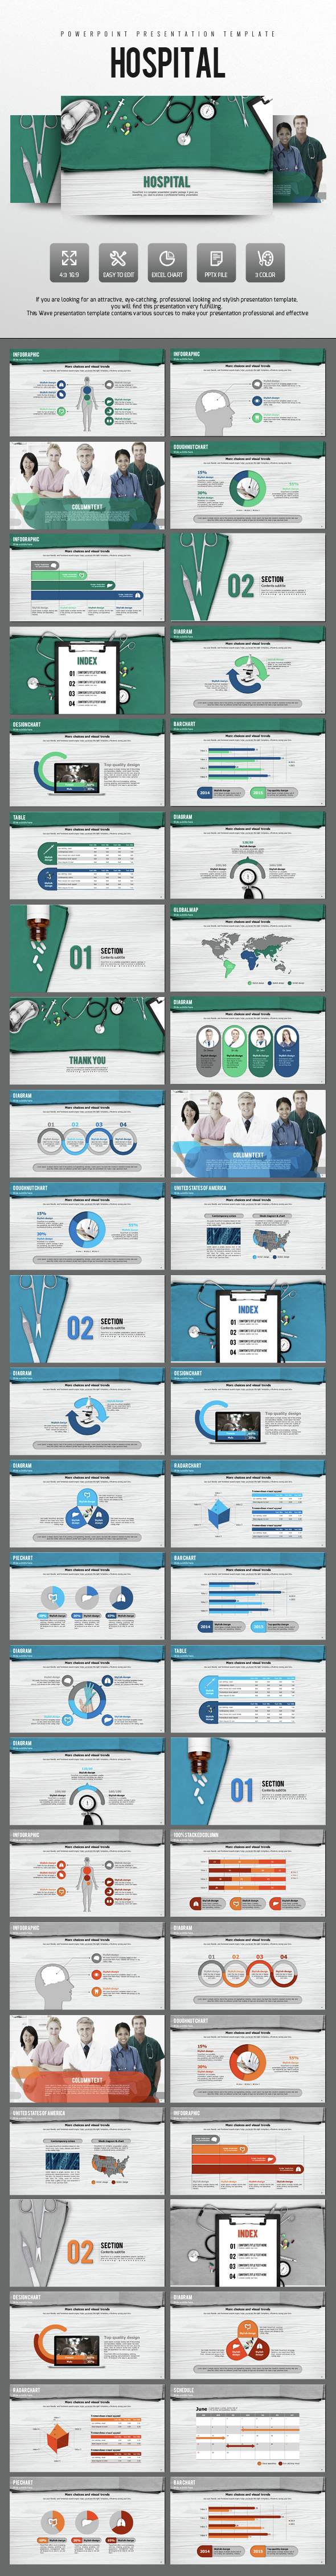 Hospital Presentation Template - PowerPoint Templates Presentation Templates